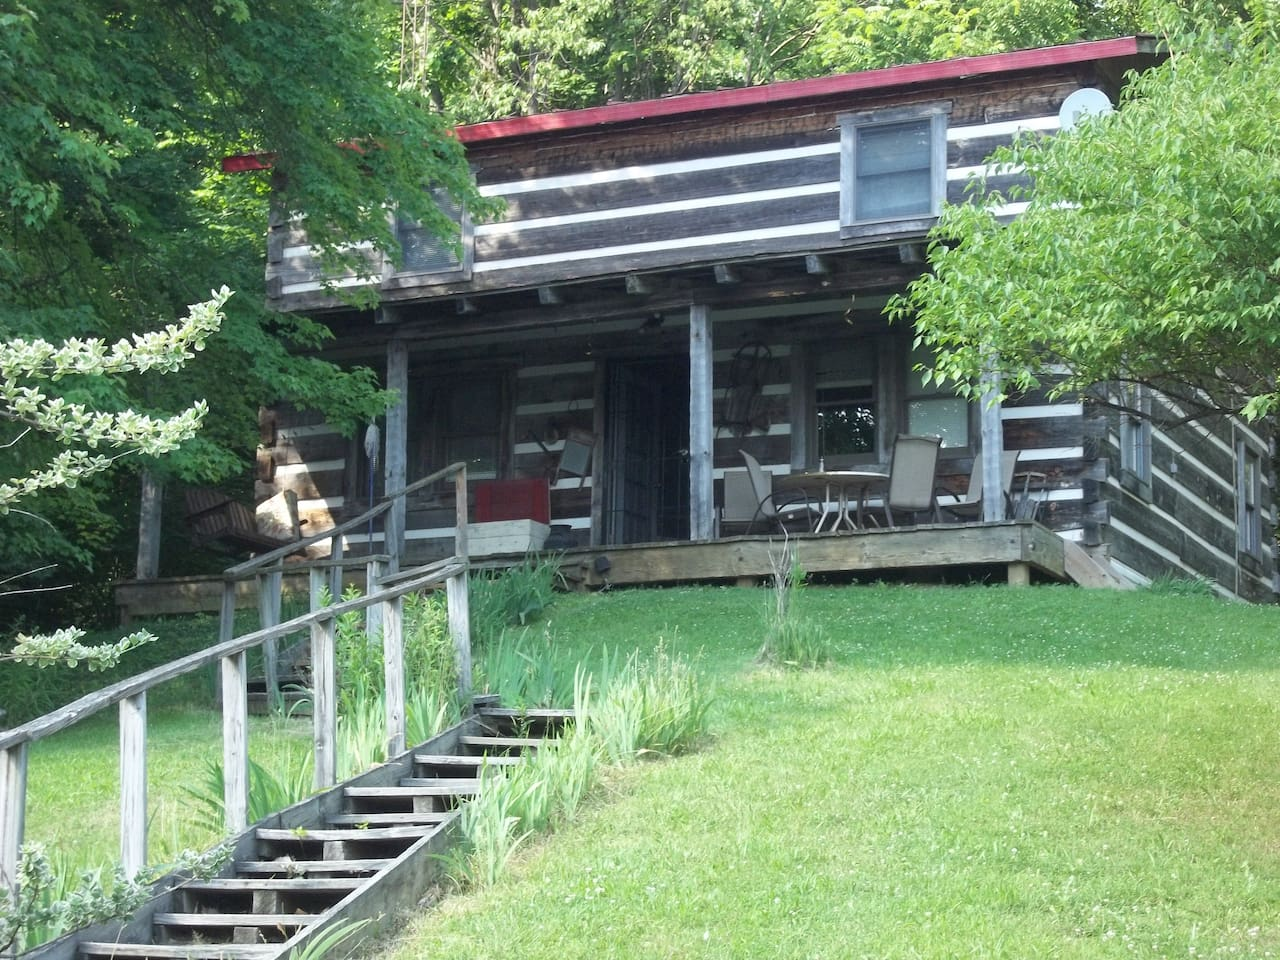 Welcome to Hilltop Hide-A-Way log home - a great place to relax and enjoy nature.